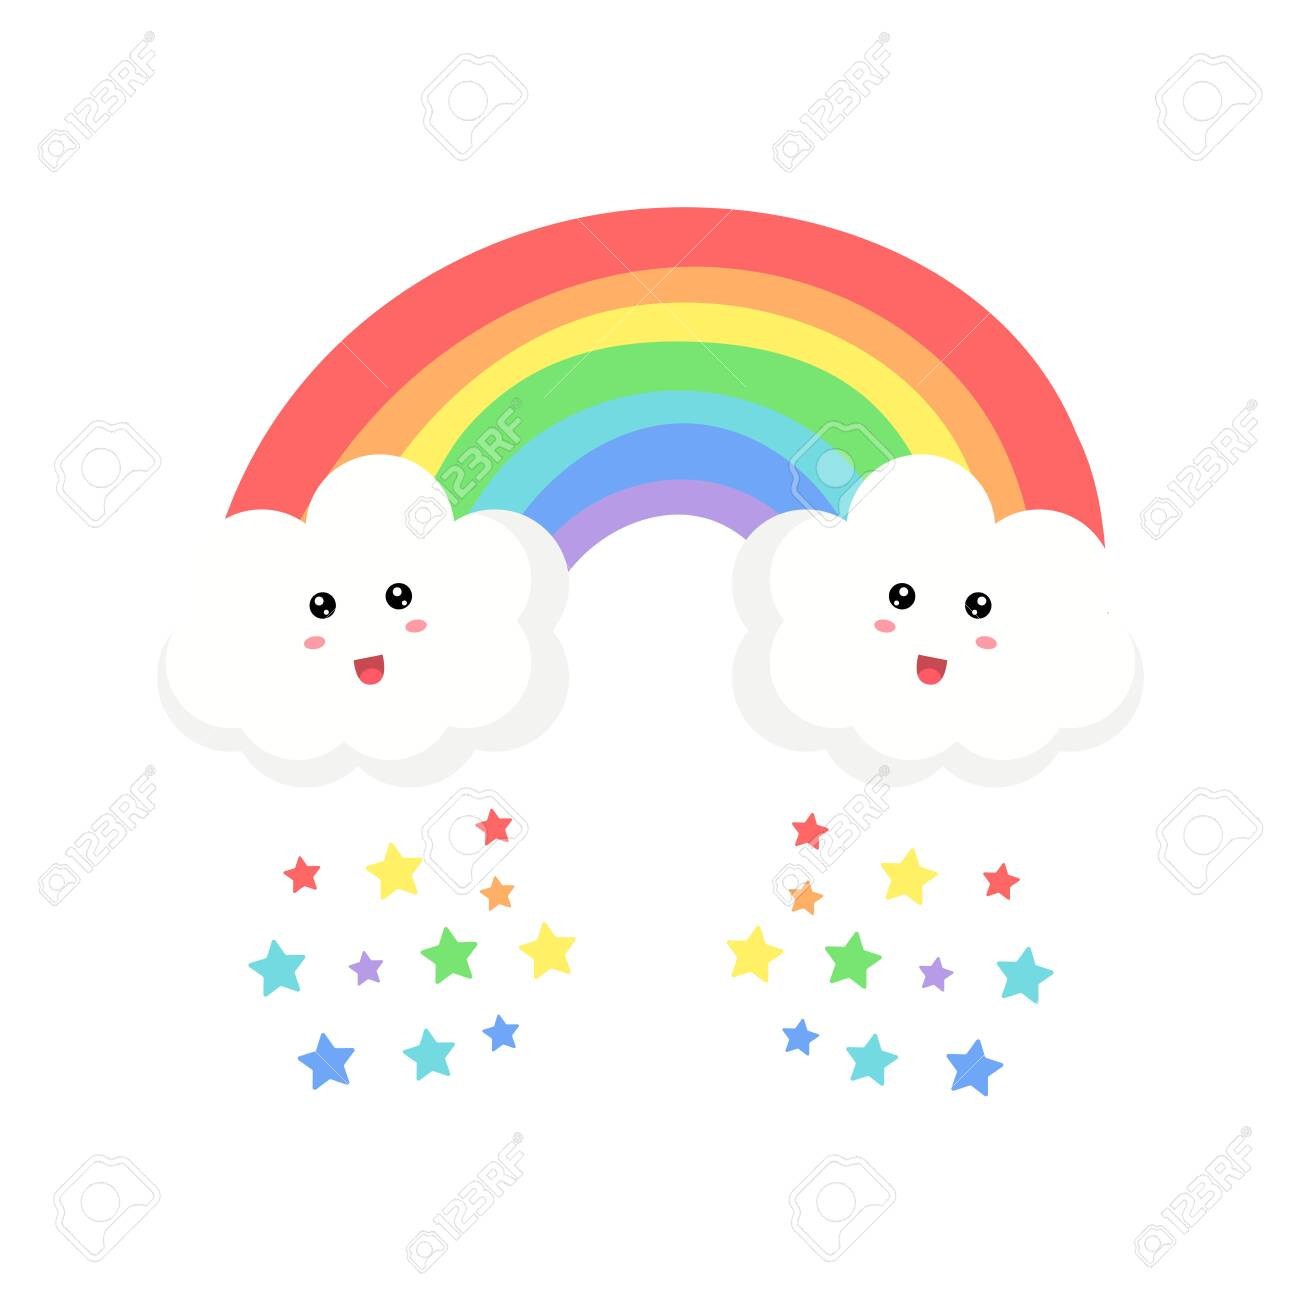 Cute Clouds And Rainbow Drawing Vector Illustration Isolated Royalty Free Cliparts Vectors And Stock Illustration Image 128516663